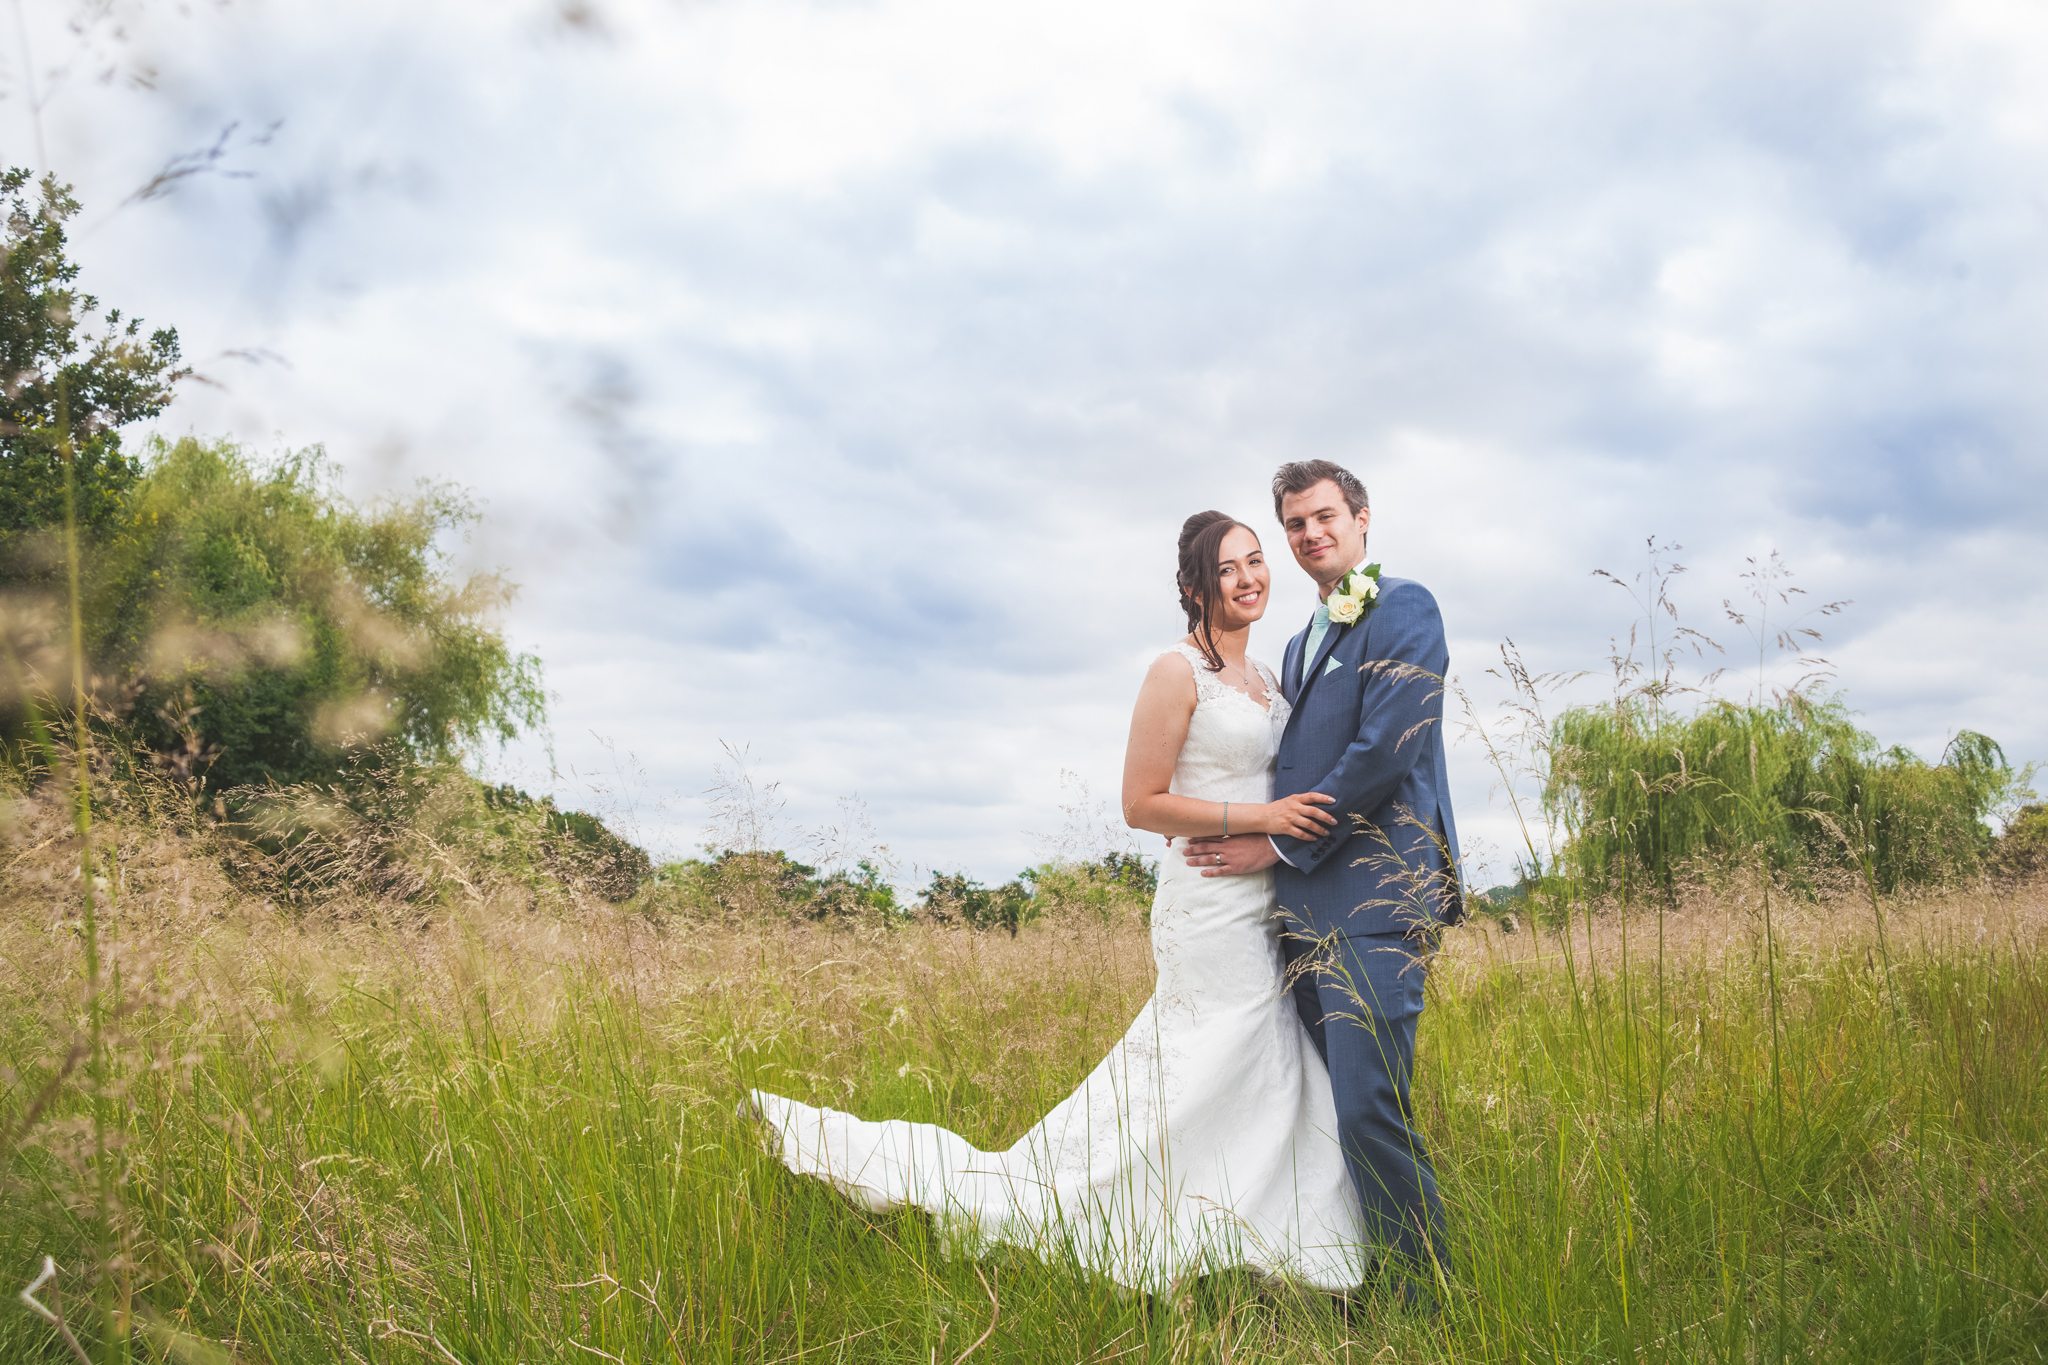 Norfolk Wedding Photographer - Stephen Buss Photography